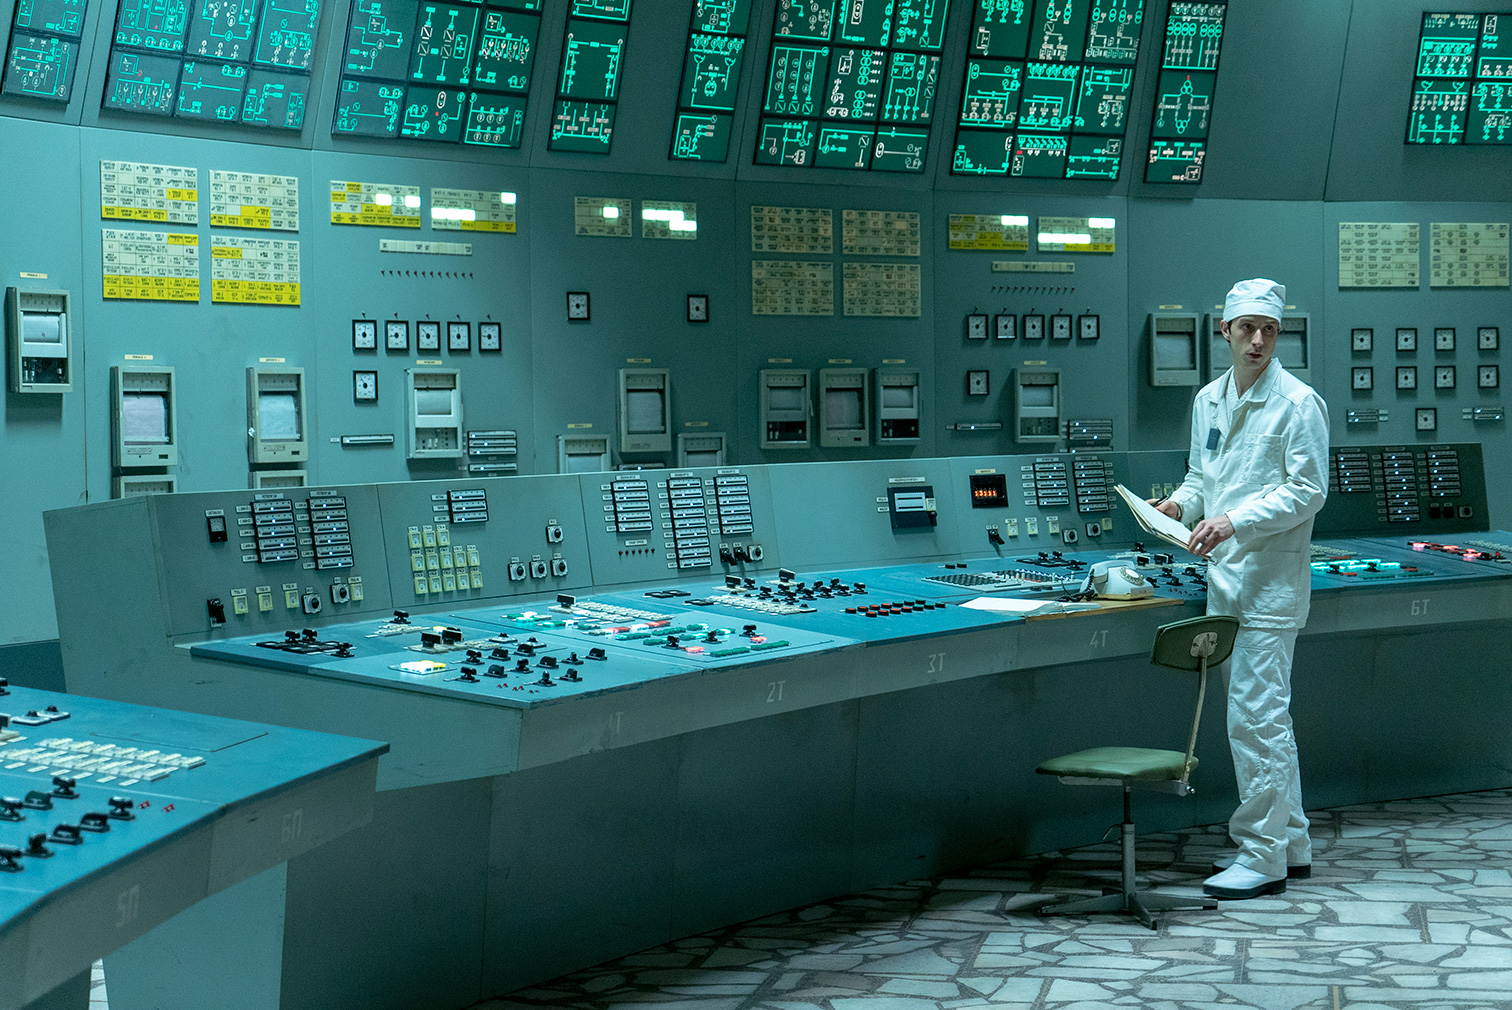 The control room from Chernobyl was recreated using historic photographs